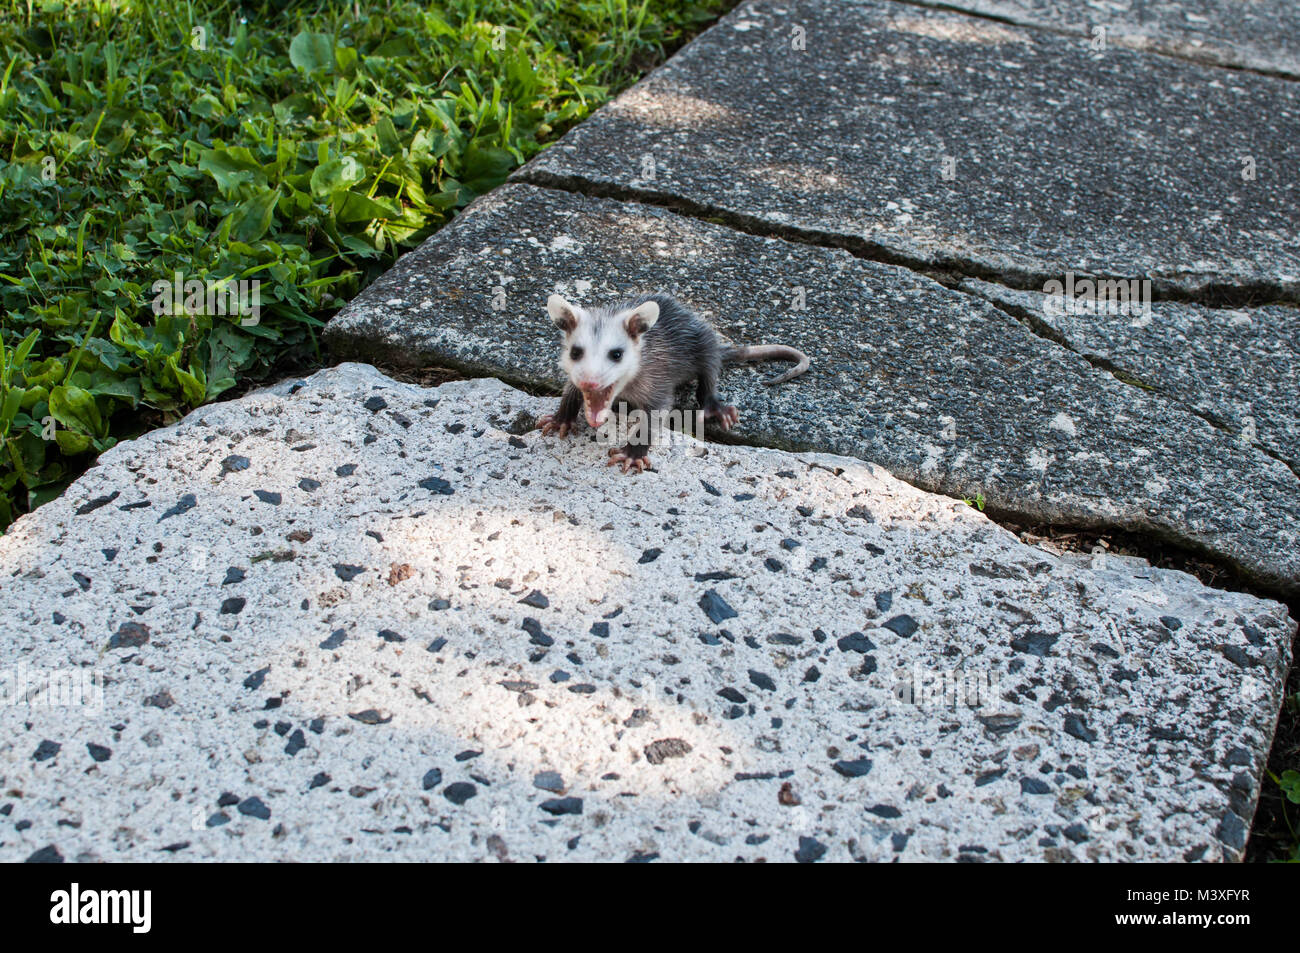 Angry Young Baby Opossum Hissing and Showing Teeth - Stock Image